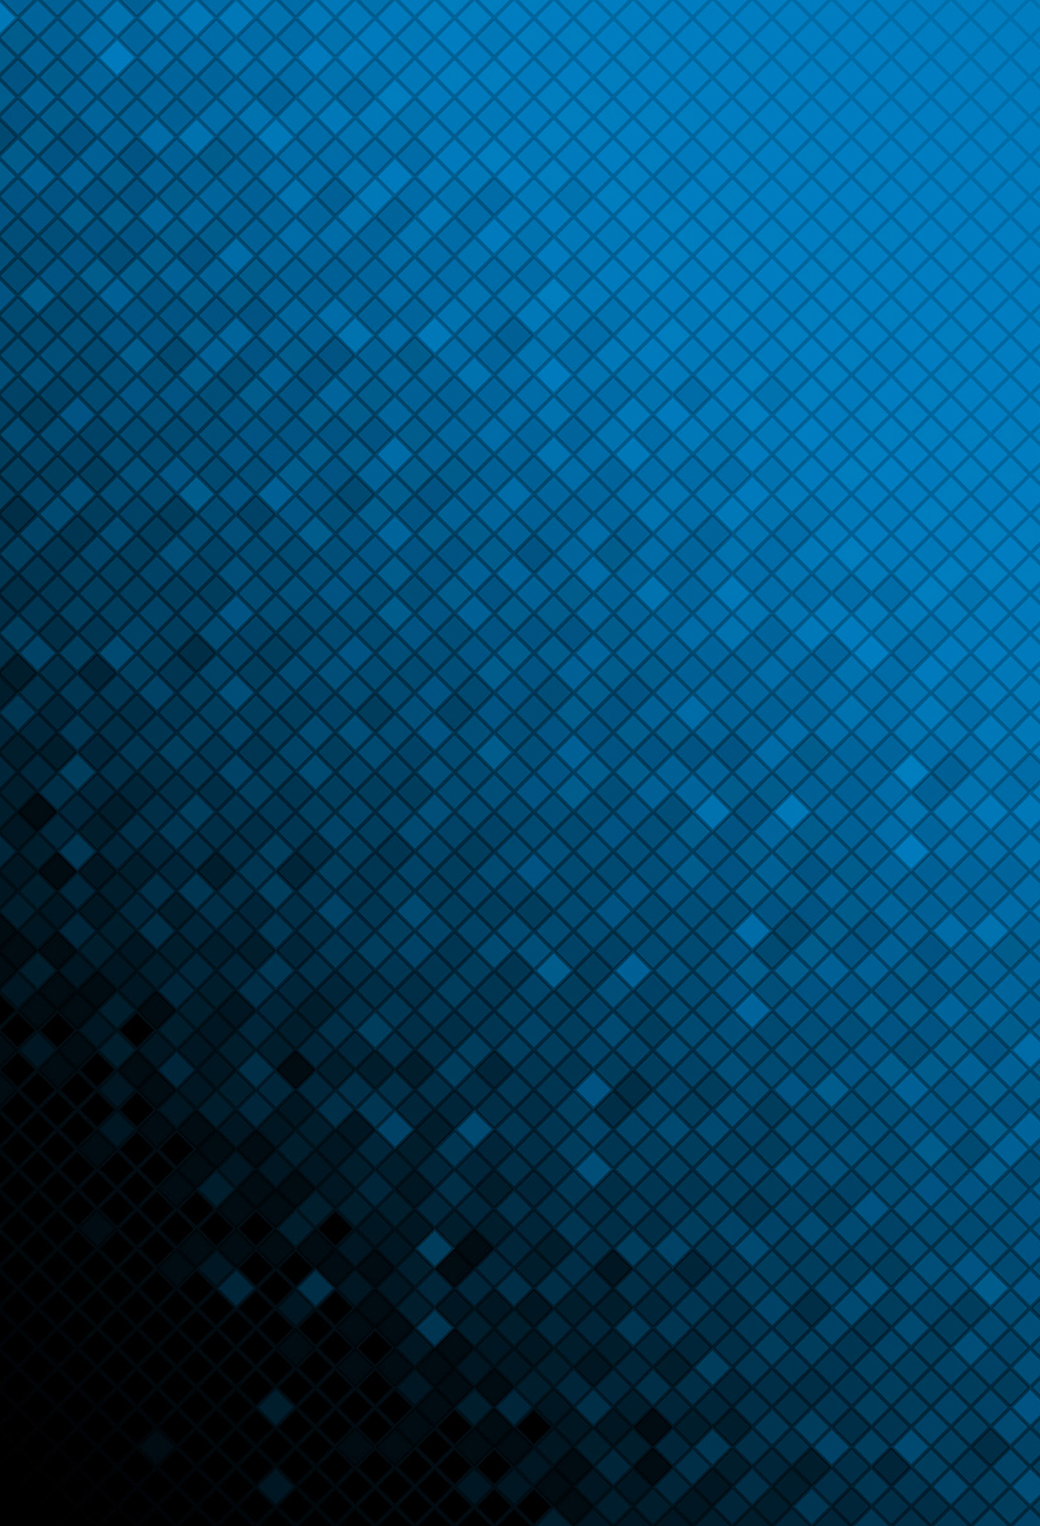 Blue Mosaic 3Wallpapers iphone Parallax Blue Mosaic